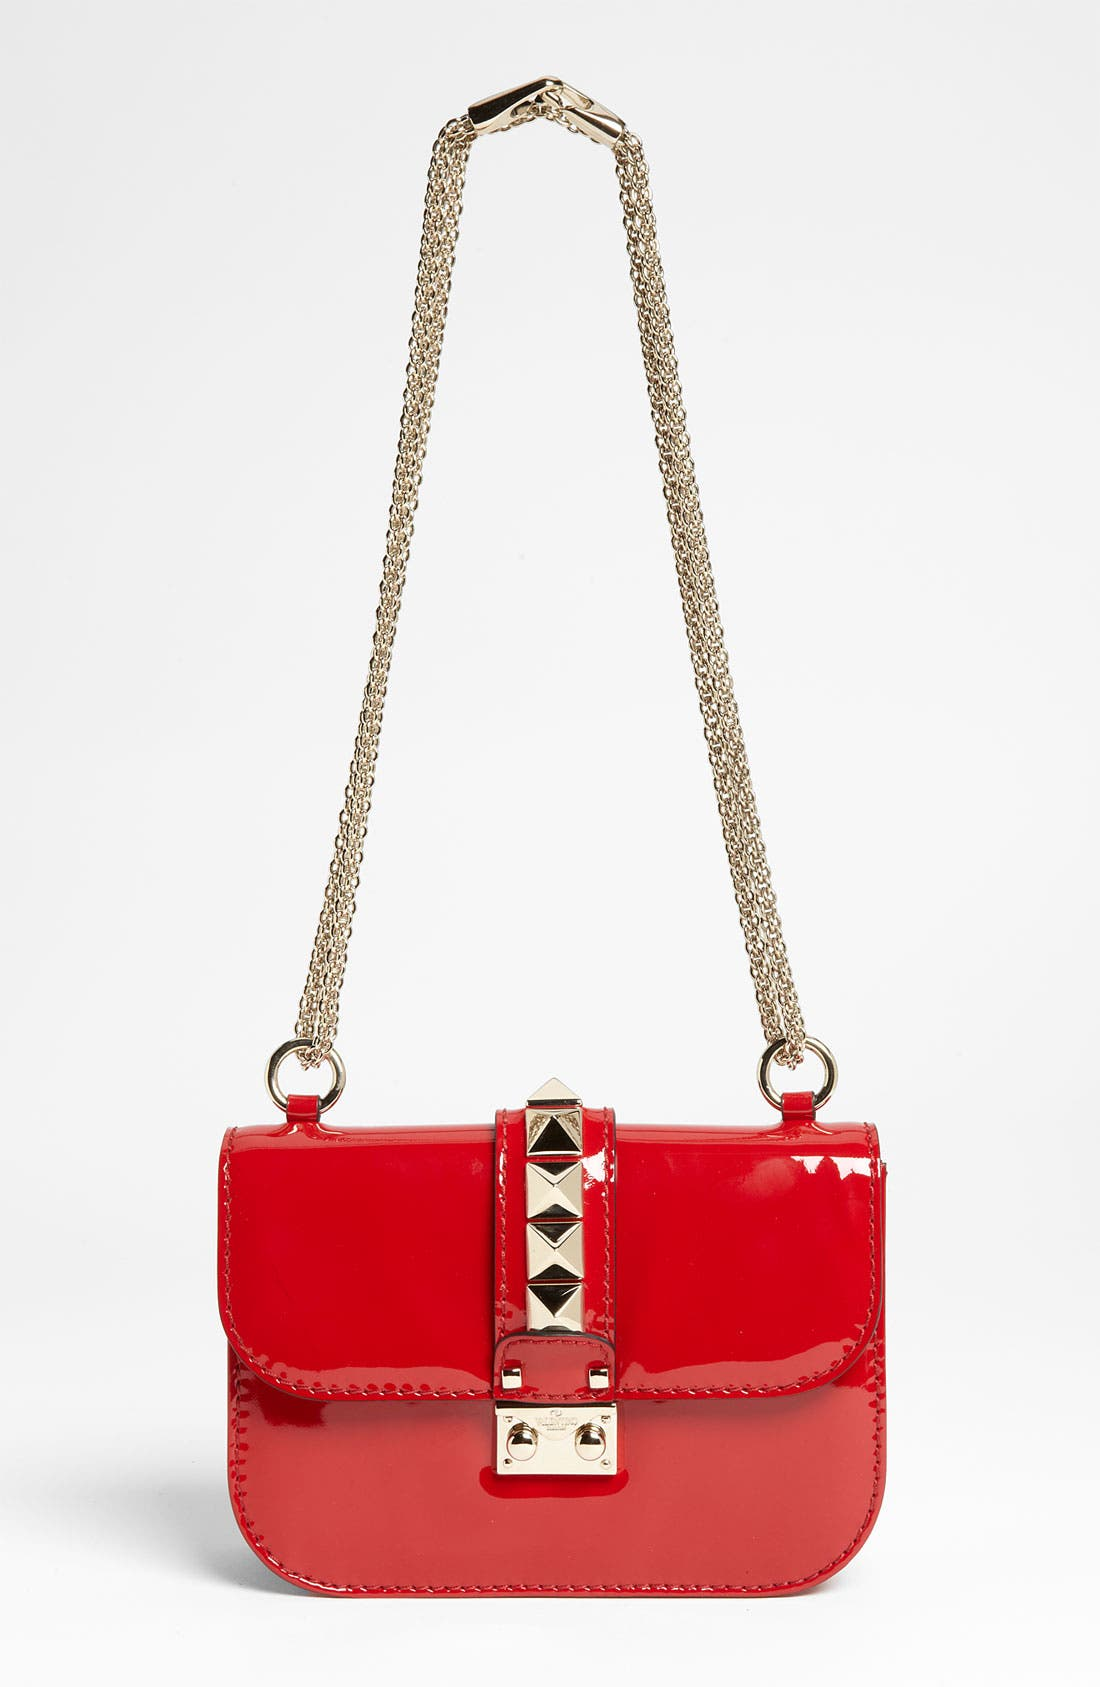 Main Image - Valentino 'Rockstud - Small Lock' Leather Shoulder Bag